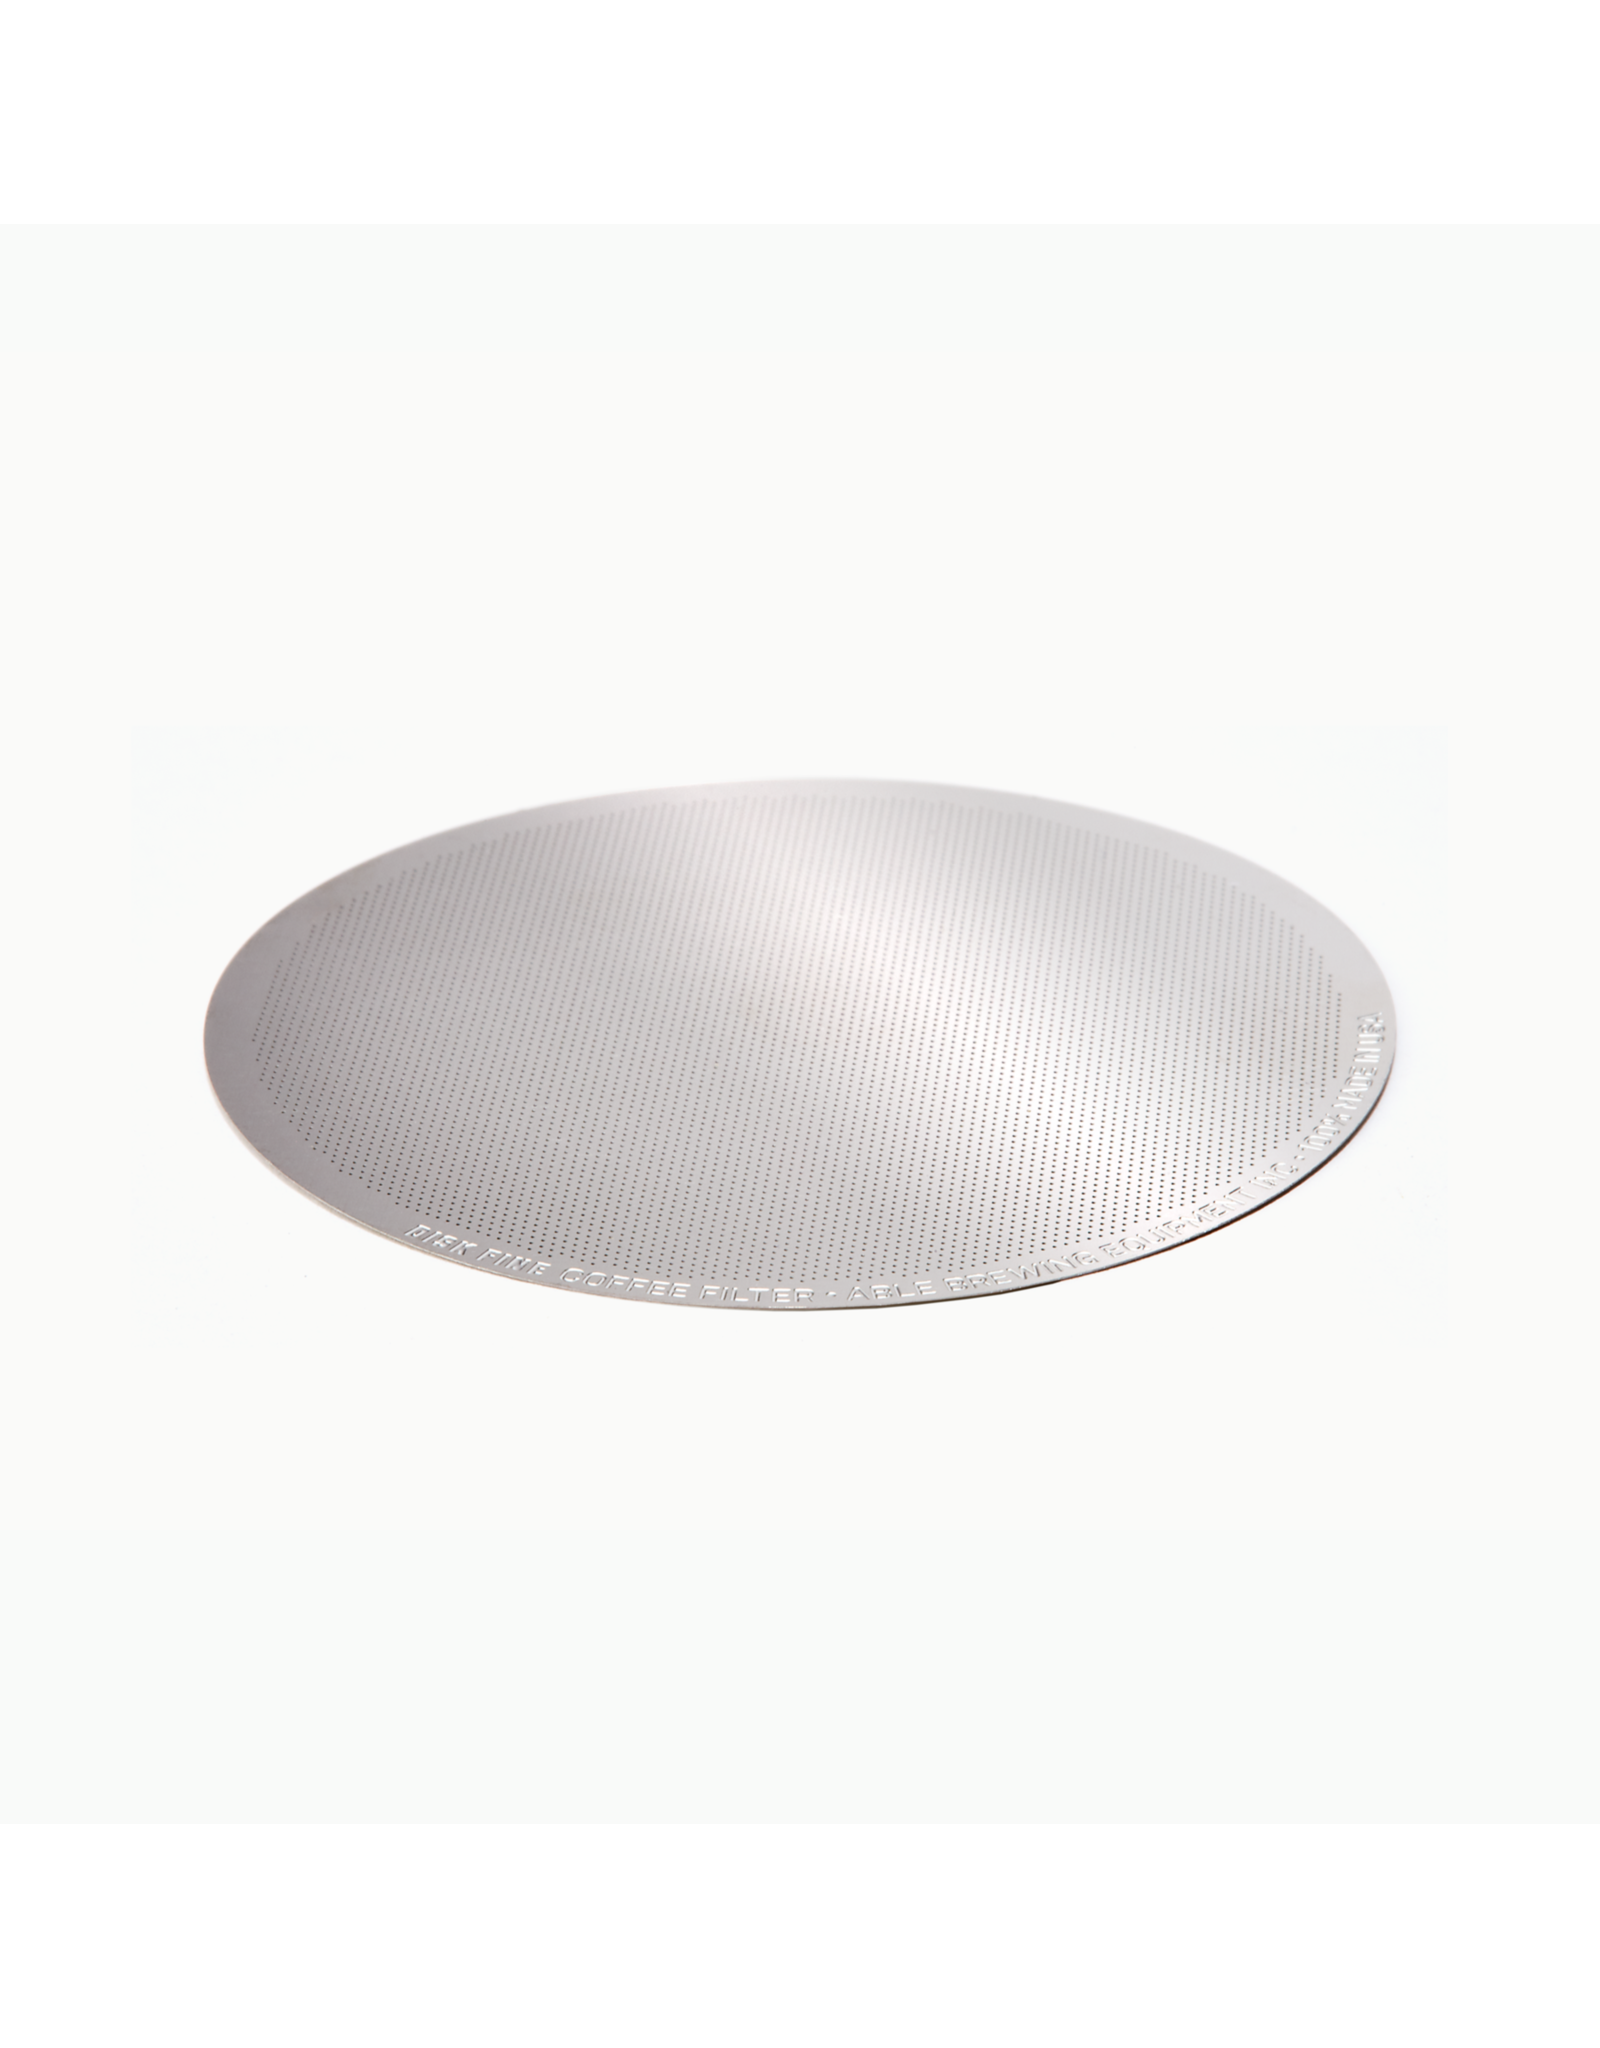 Able Able Disc Filter for AeroPress